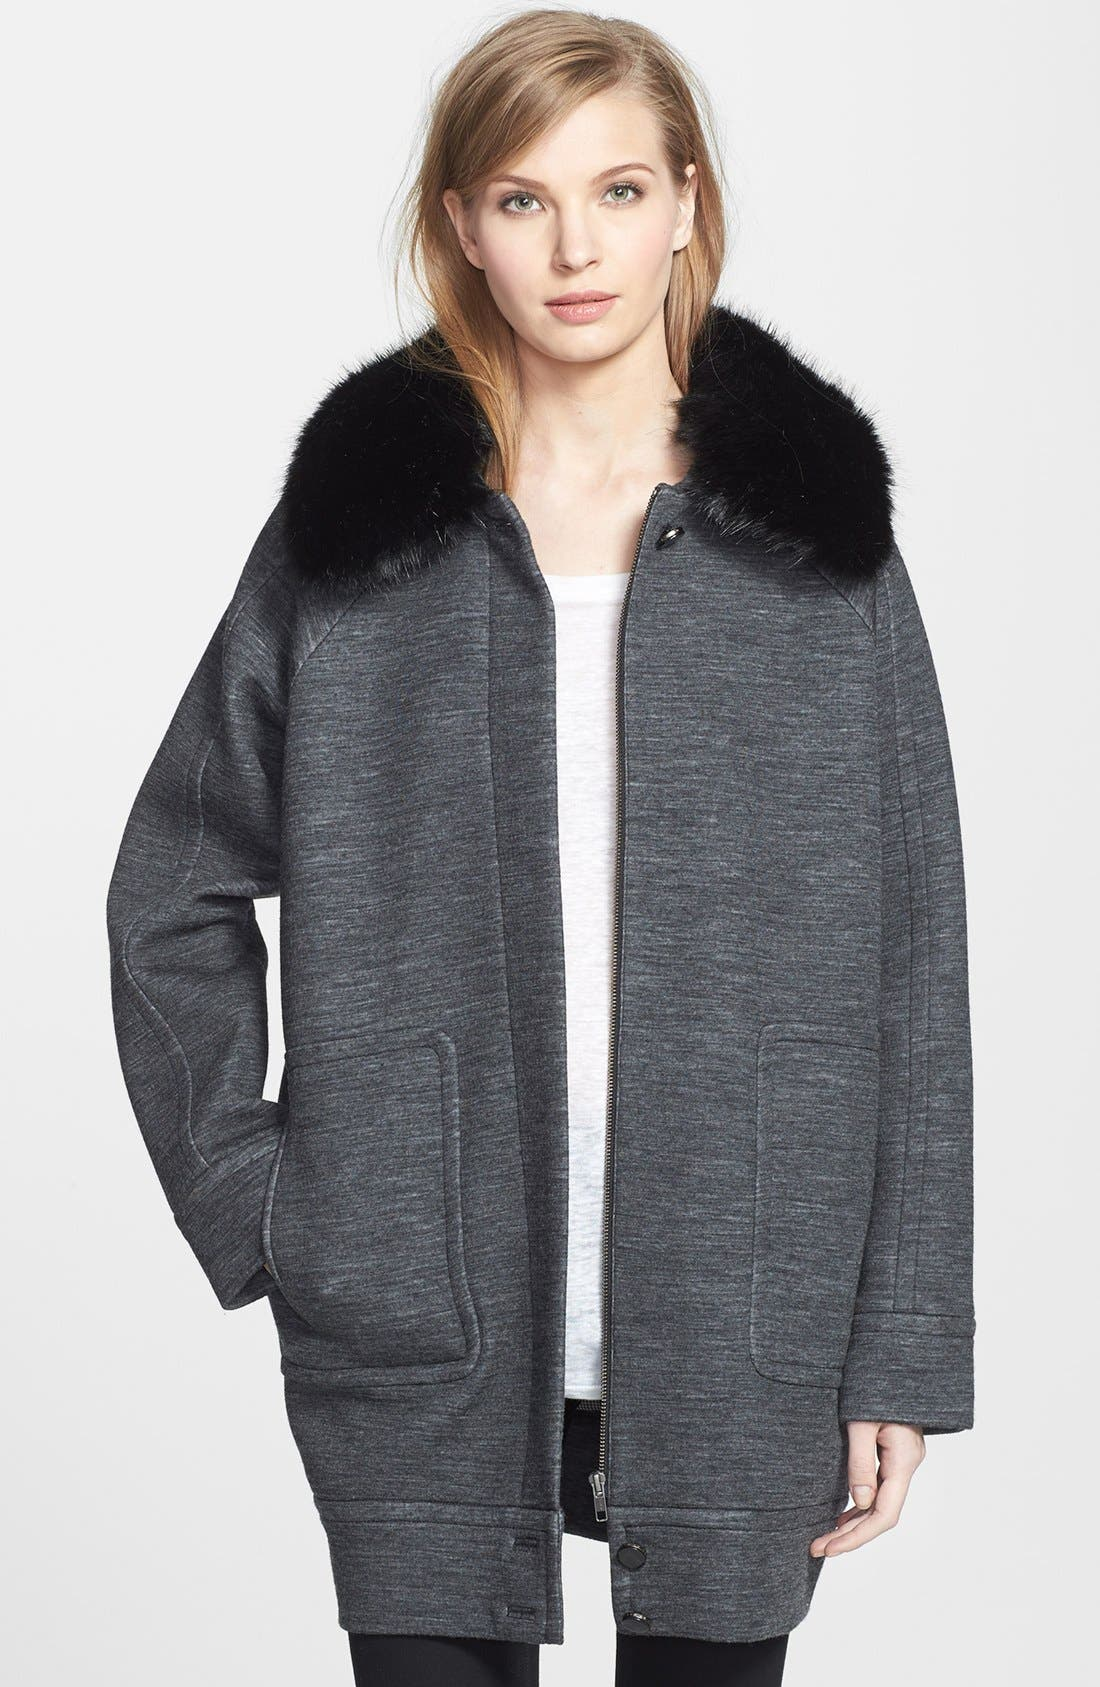 Alternate Image 1 Selected - MARC BY MARC JACOBS 'Gertrude' Faux Fur & Double Face Wool Blend Coat